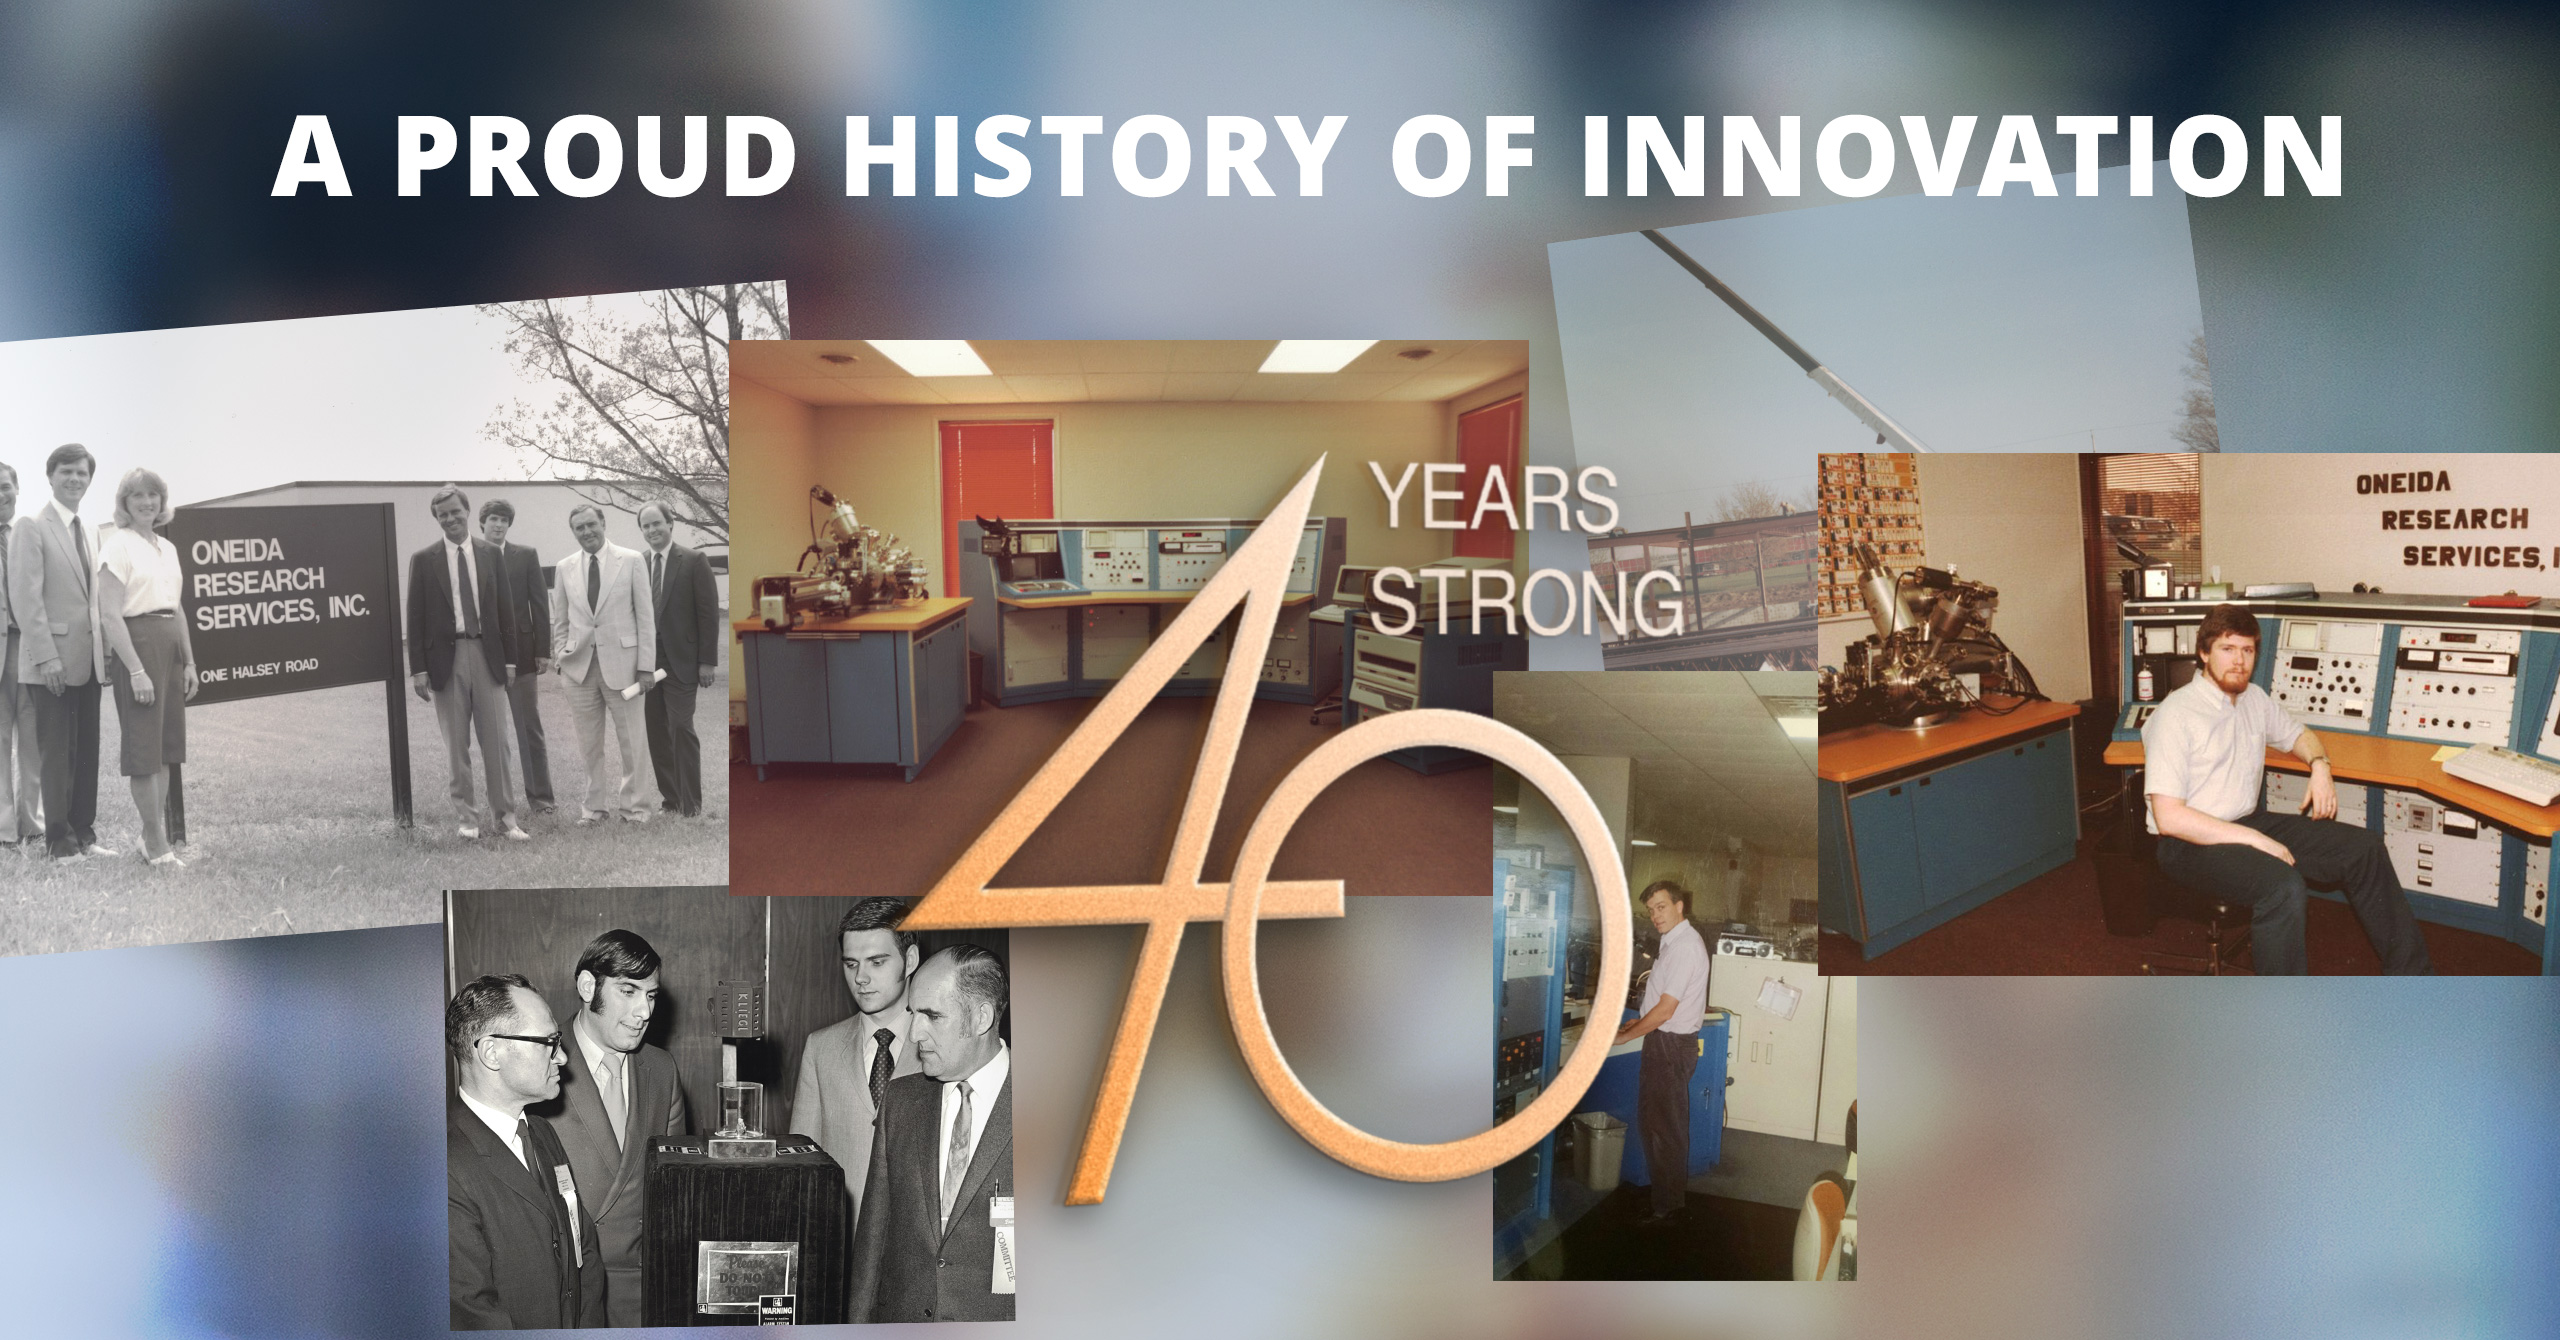 A proud history of innovation - 40 years strong